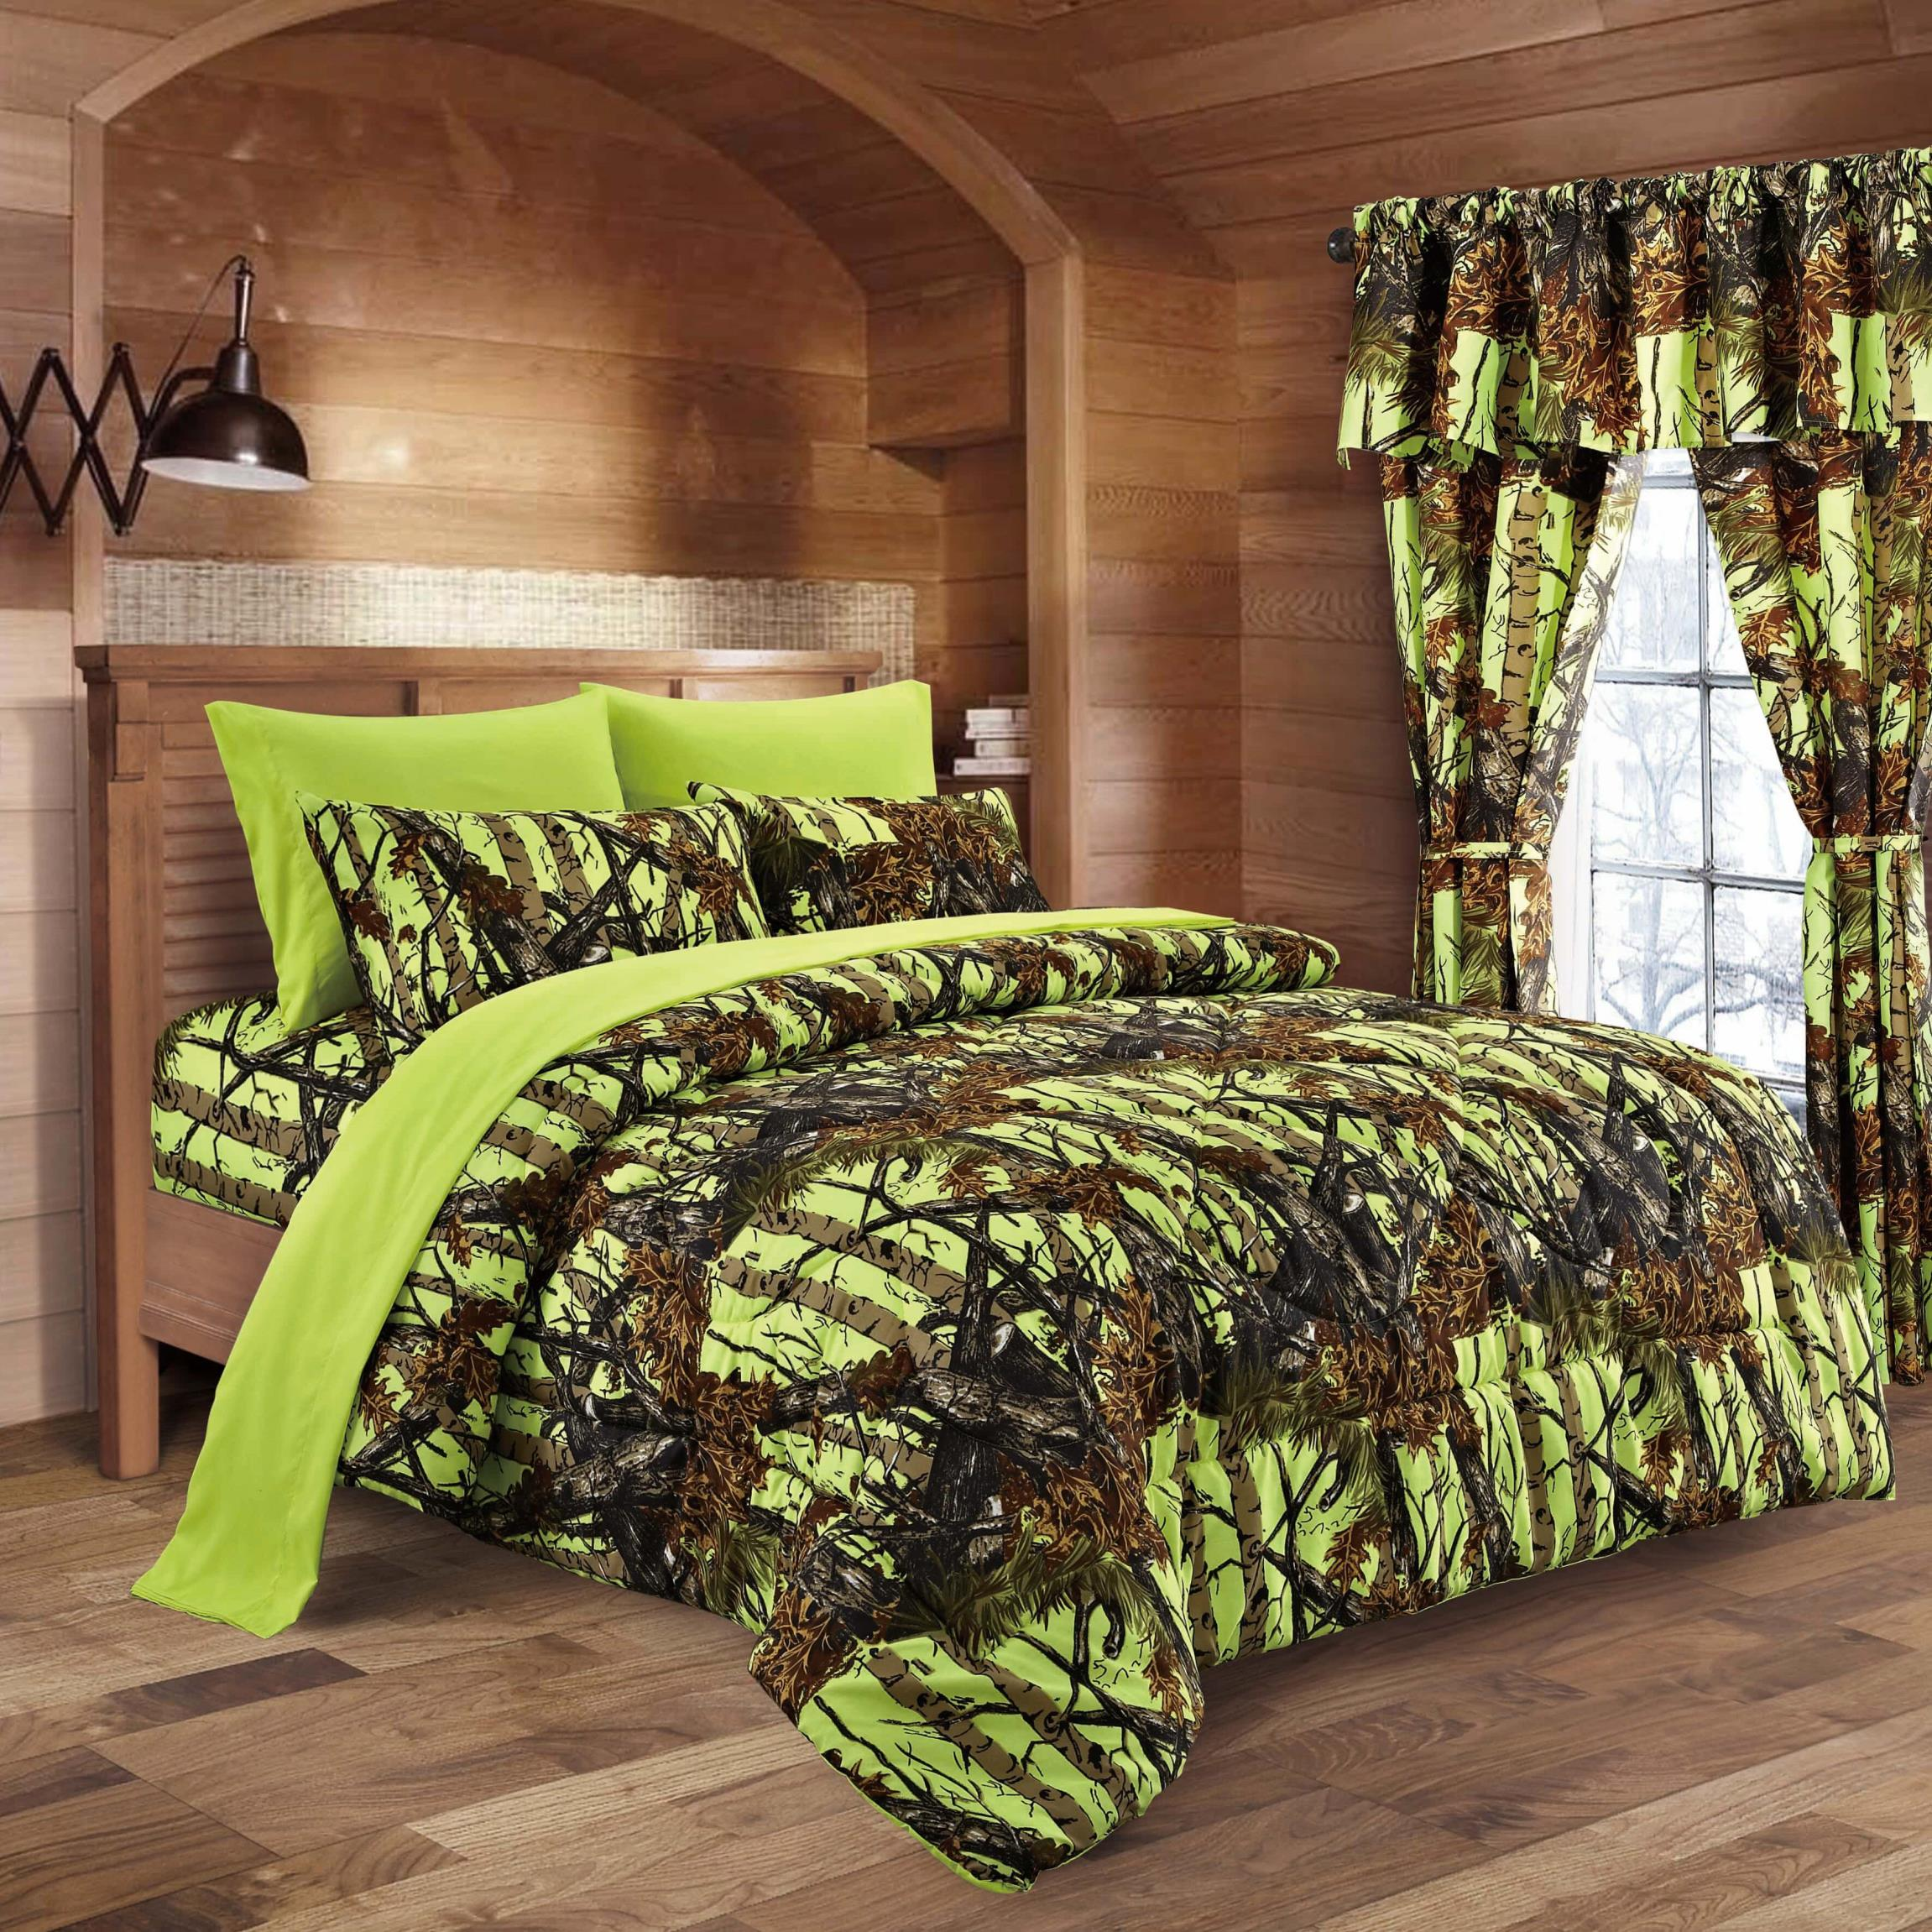 Lime Camo Bed In A Bag Set The Swamp pany